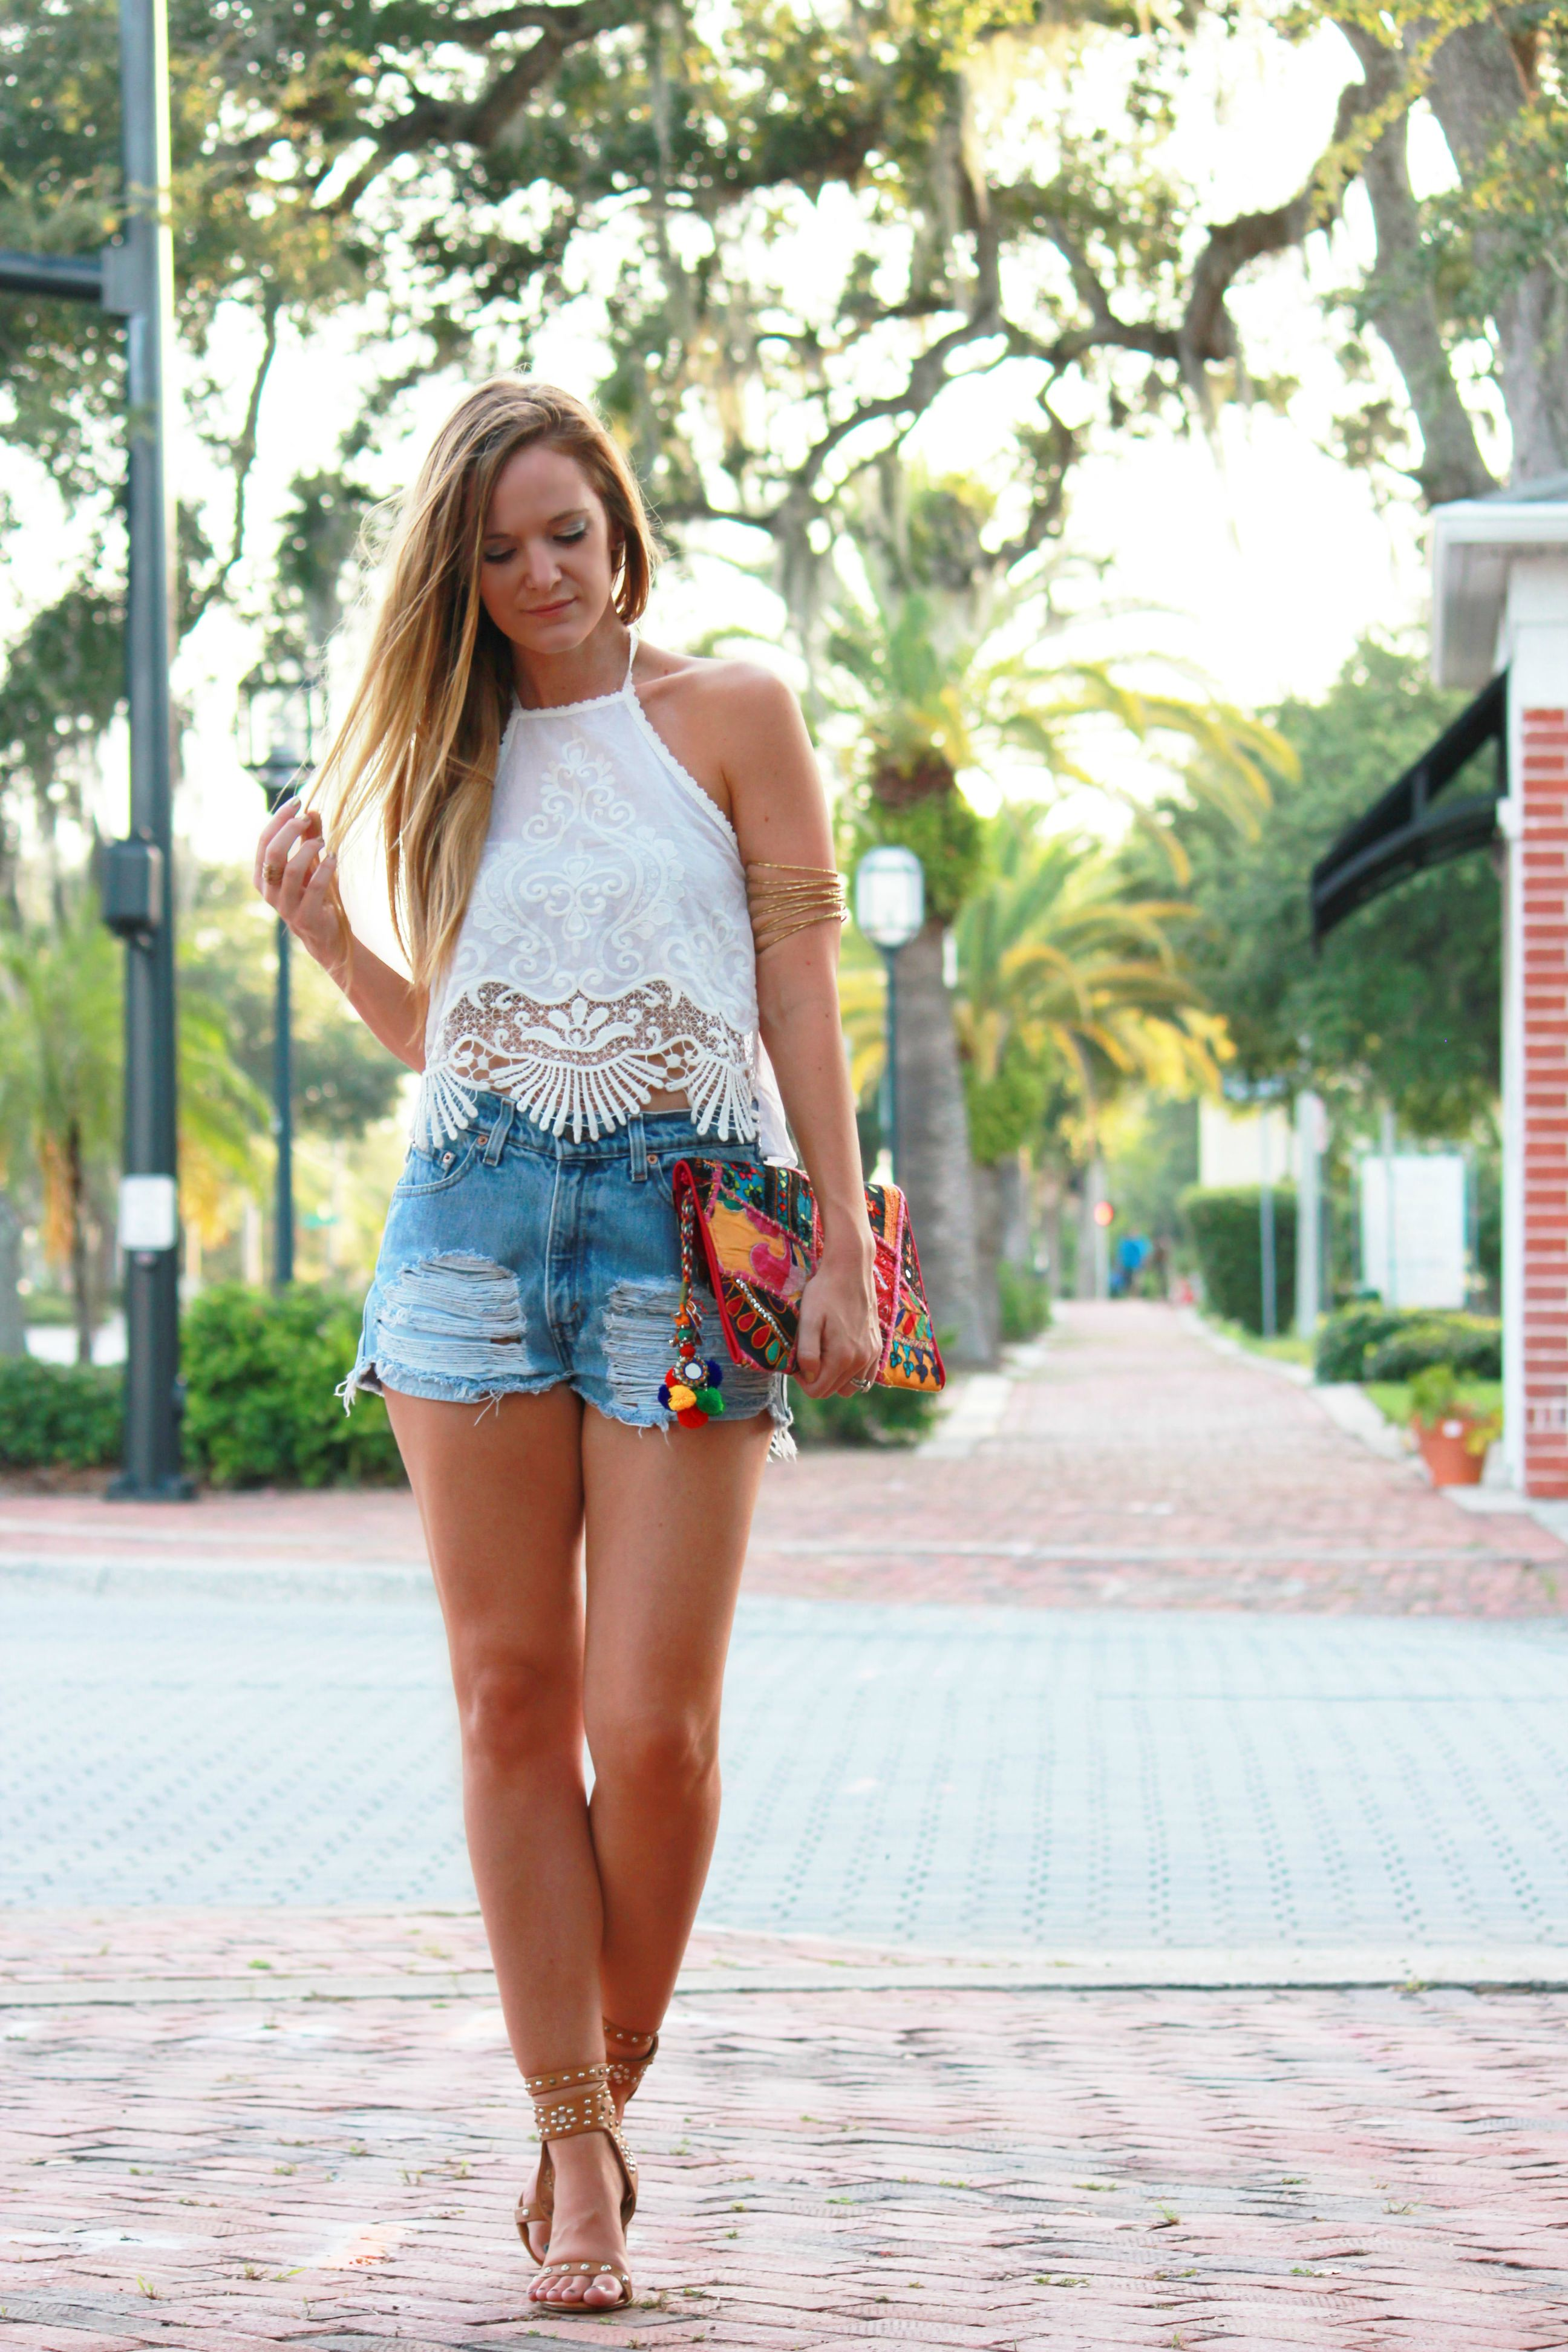 windsor top, windsor crop top, lace crop top, urban outfitters levis, urban outfitters shorts, charlotte russe sandals, isabel marant sandals, boho chic outfit, gypsy outfit, anik batik clutch, summer outfit, casual outfit